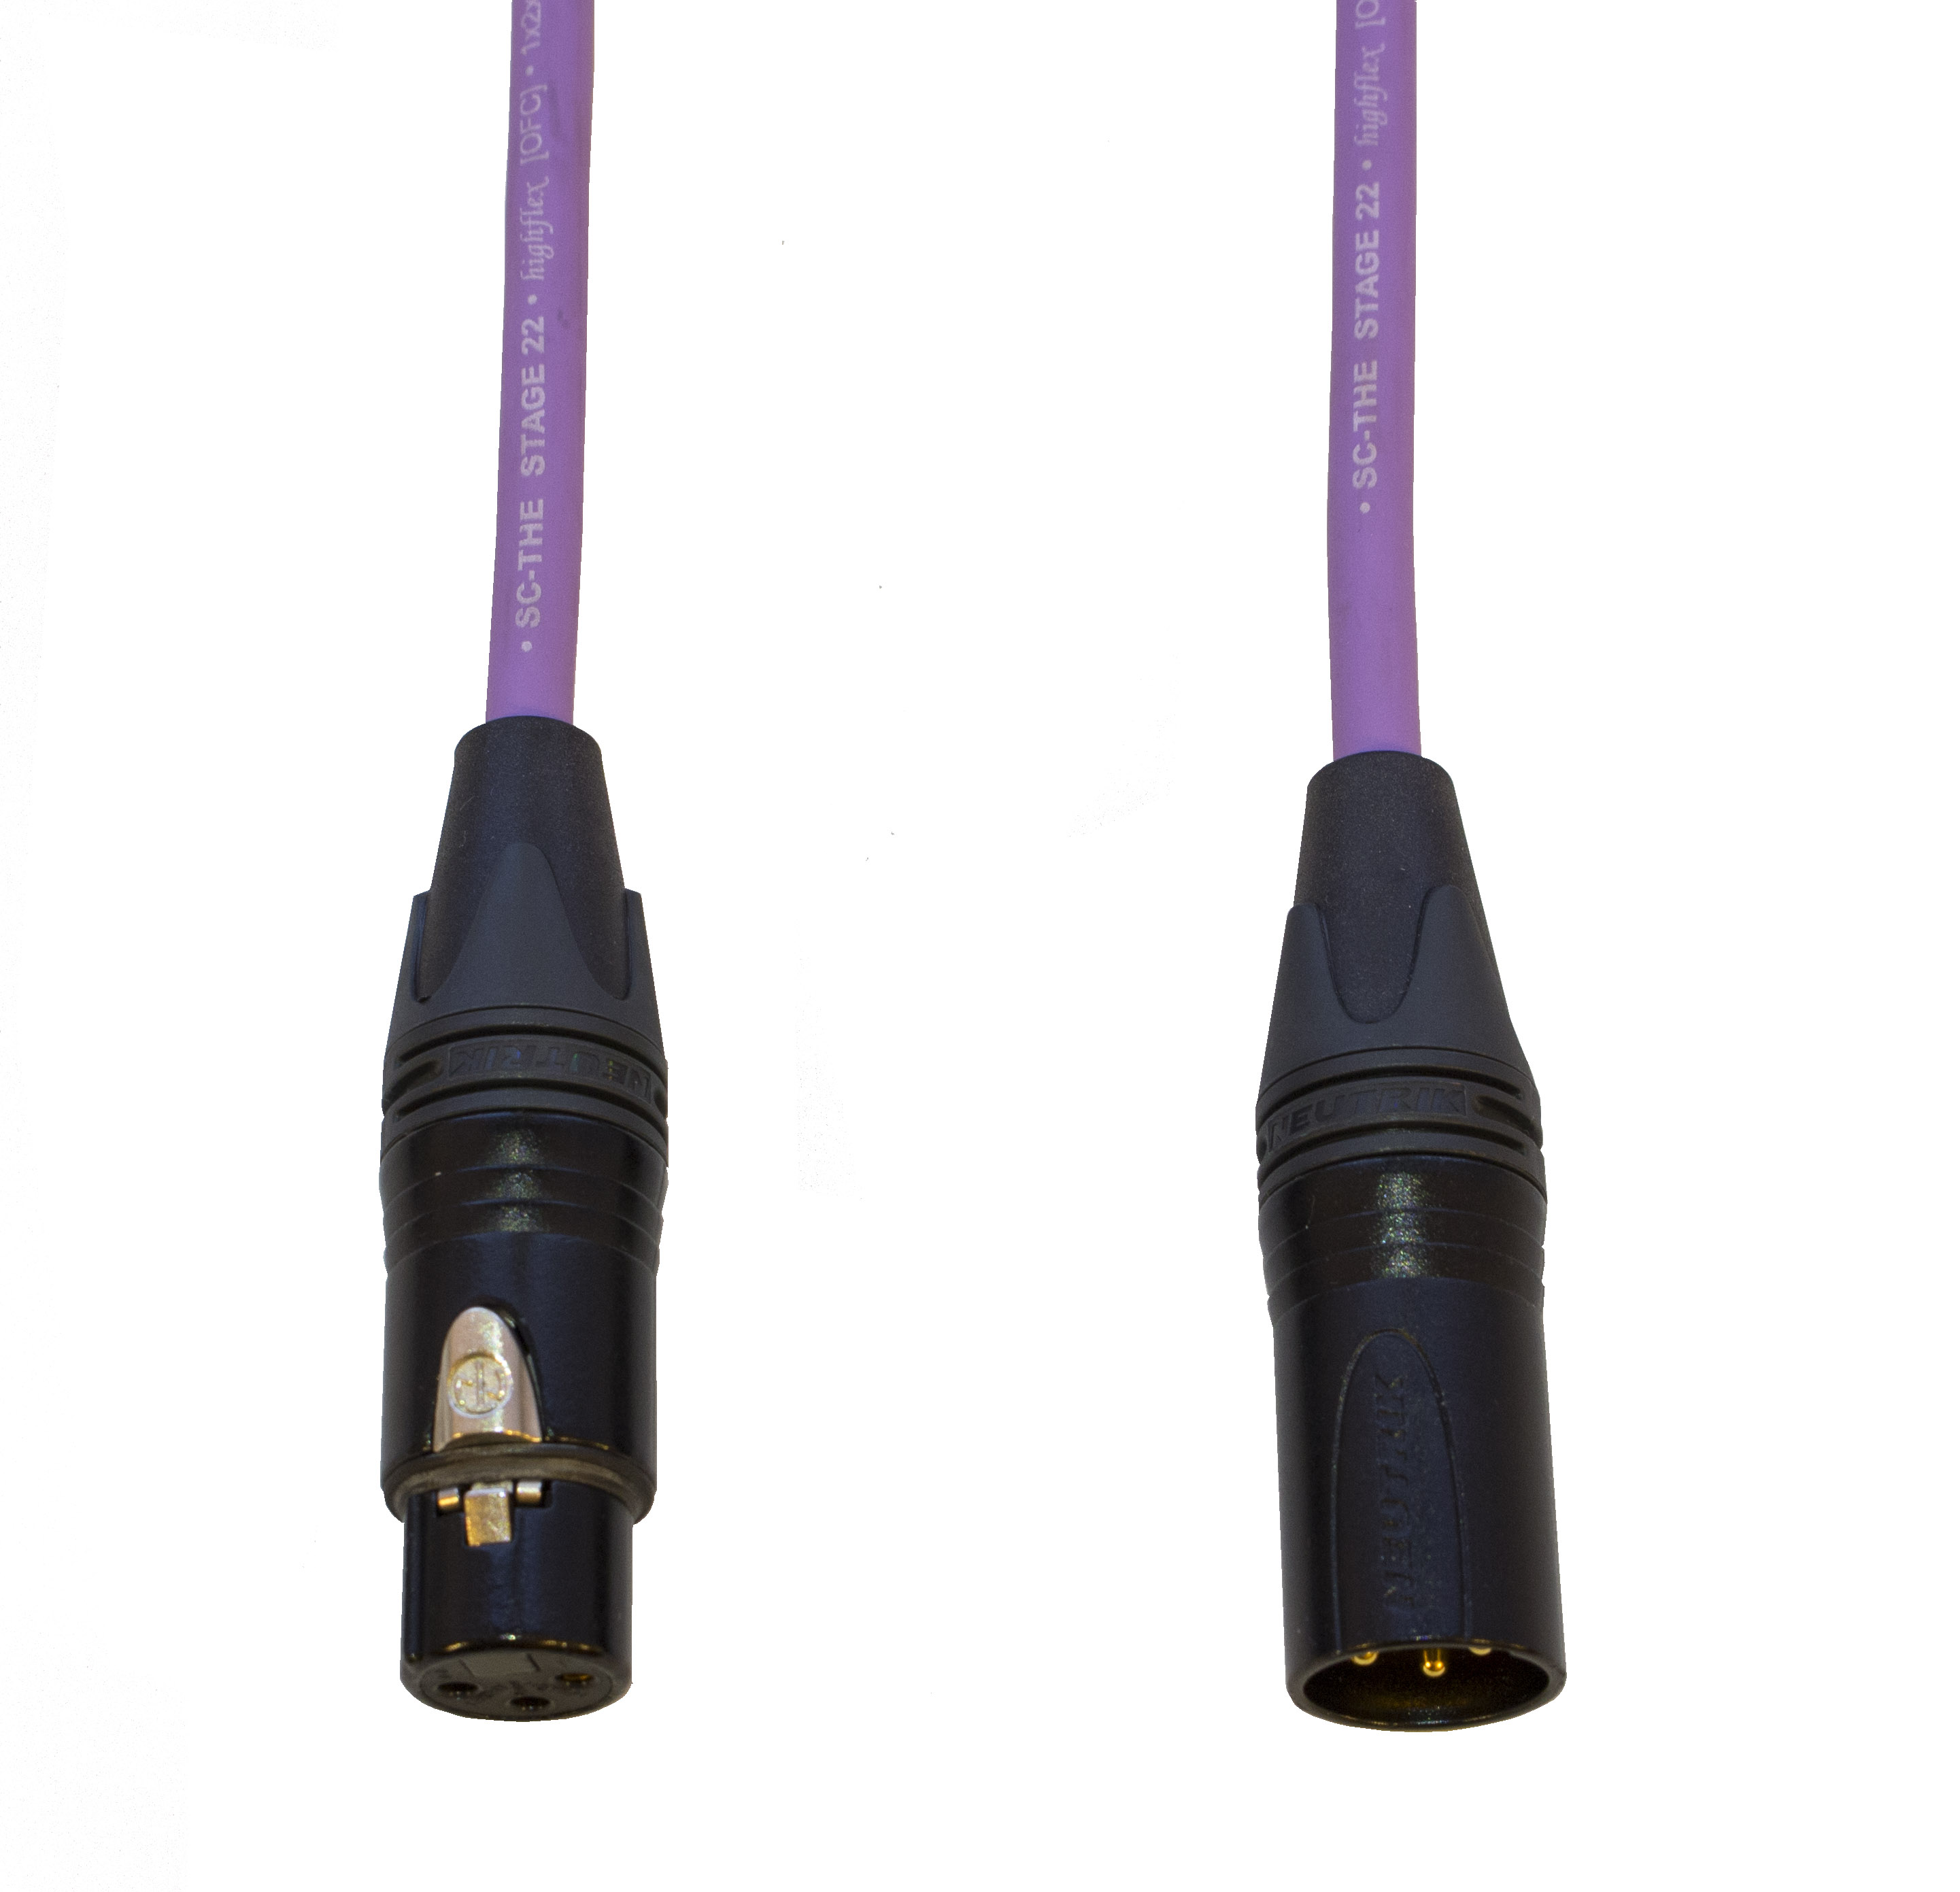 Audiokabel XLR konektor Neutrik poz. male/female  2 m, Sommer, fialový